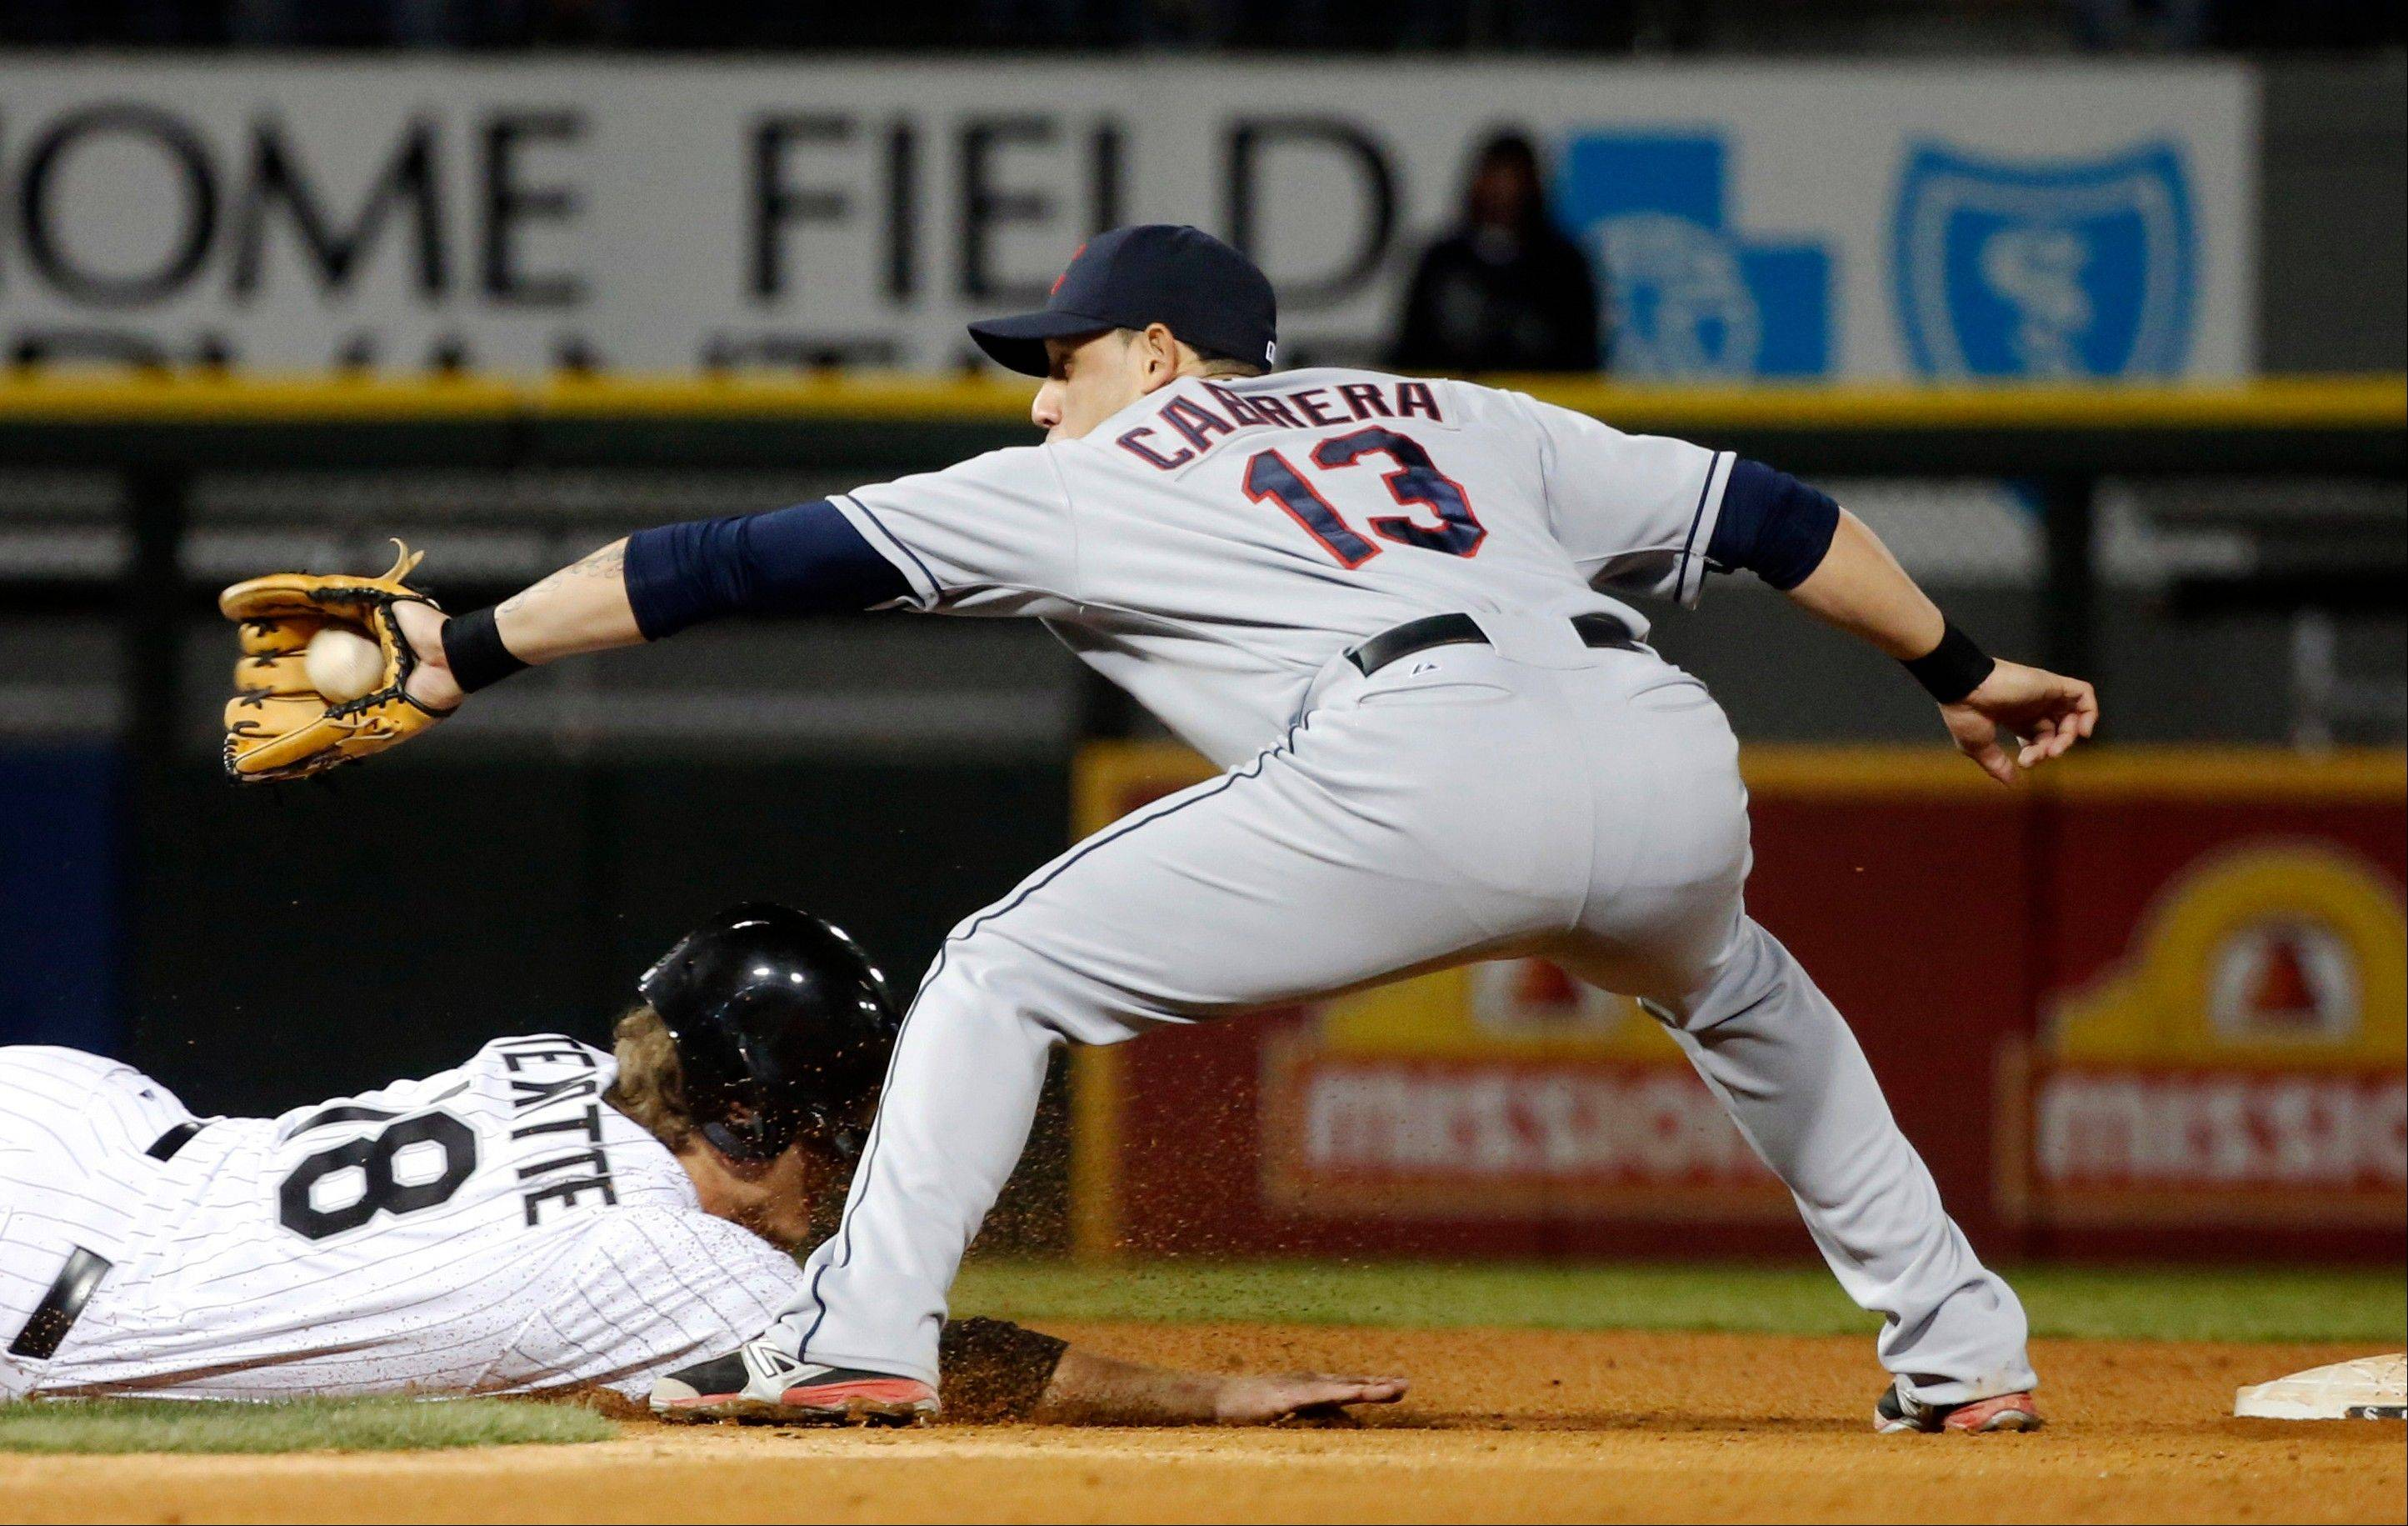 White Sox pinch runner Blake Tekotte is picked off second base as Indians shortstop Asdrubal Cabrera takes the throw in the seventh inning Monday at U.S. Cellular Field.